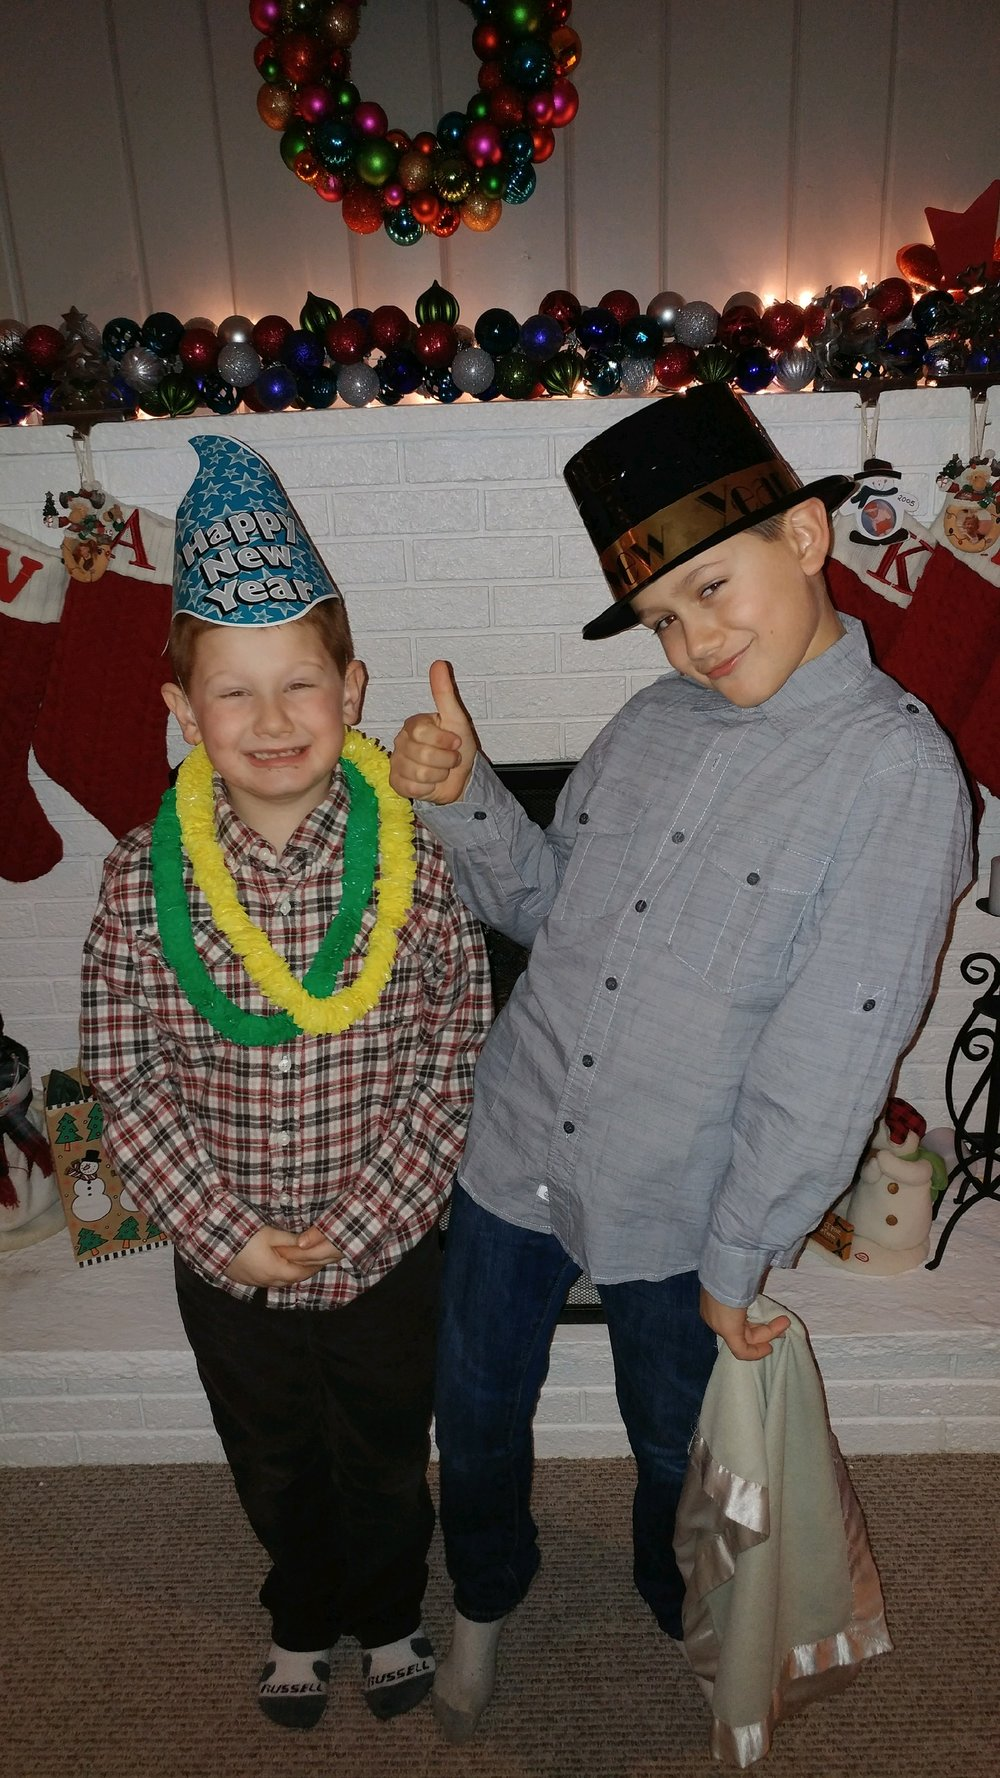 Tyler, 7, on the left and Kyle, 11, on the right